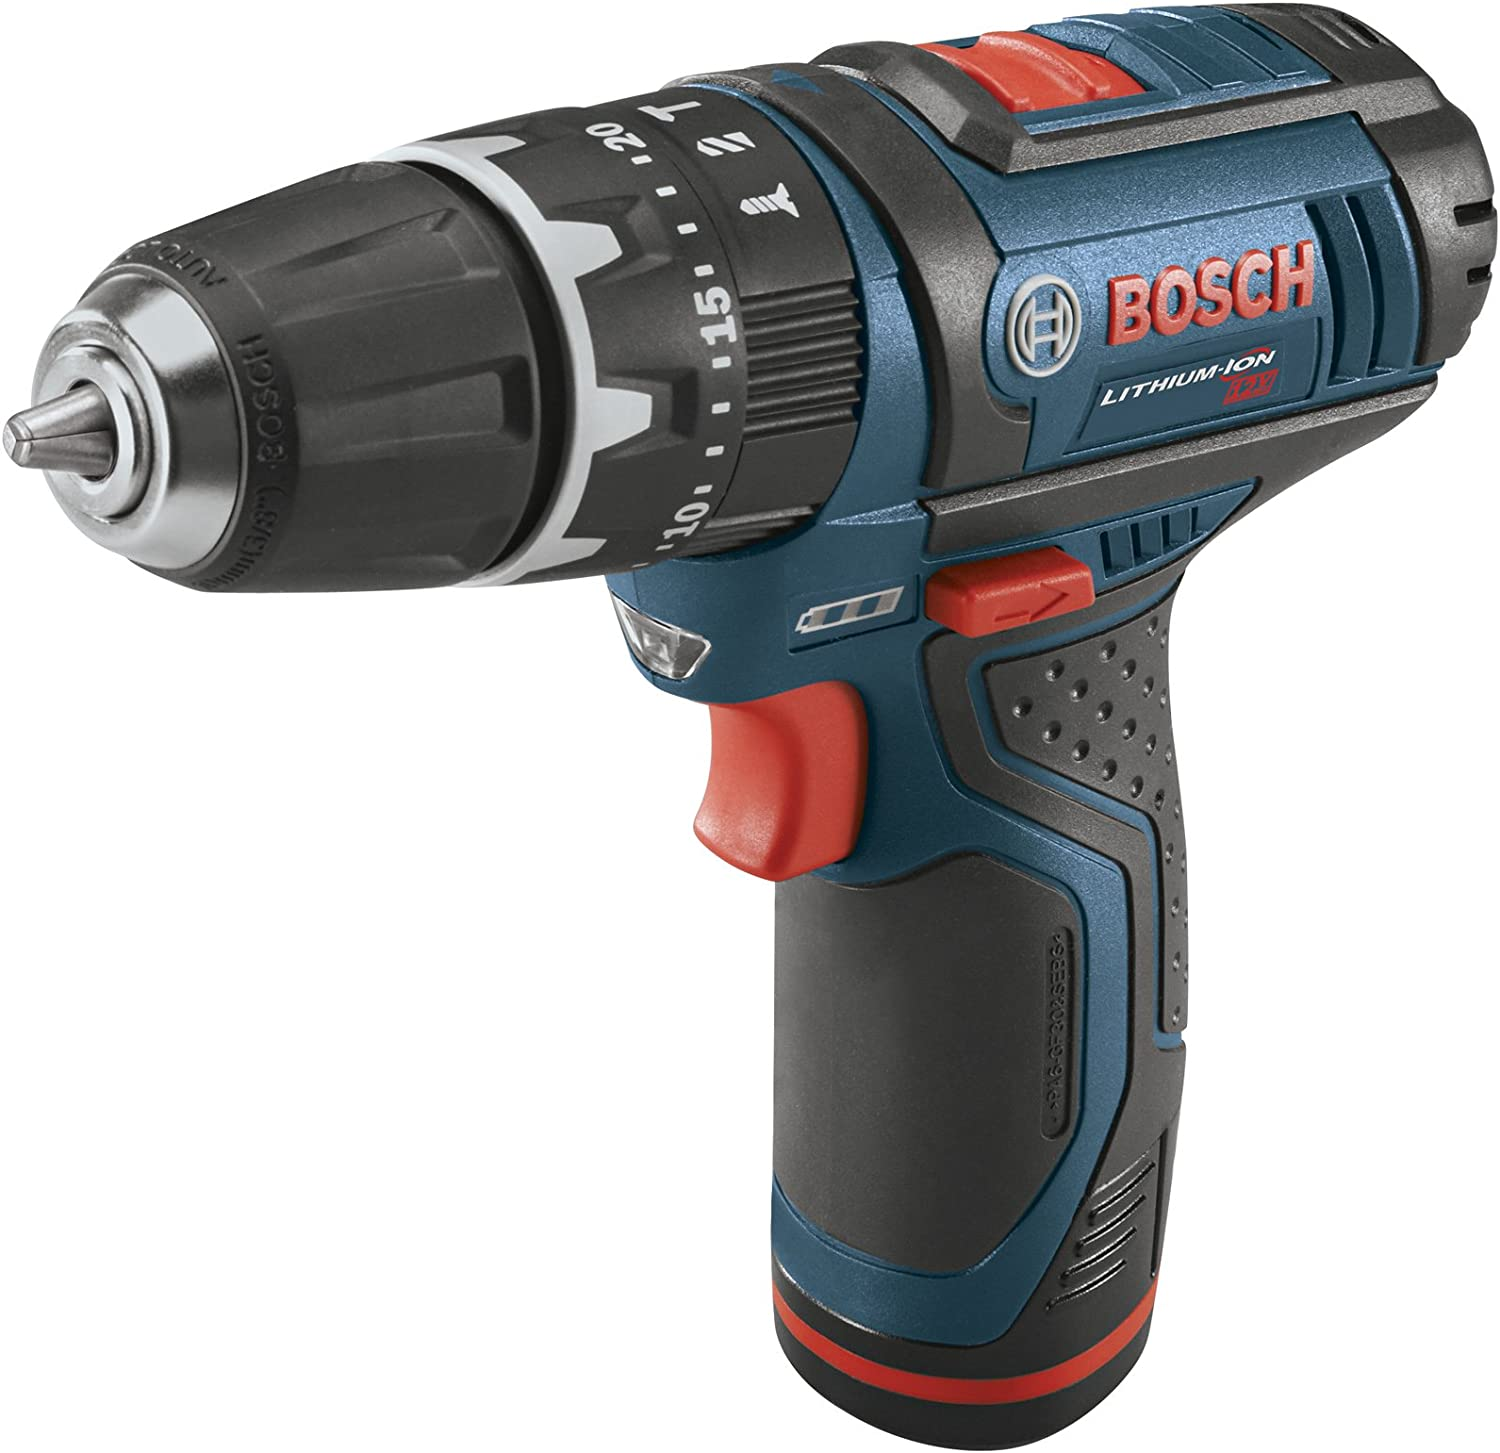 Bosch PS130-2A 12-Volt Lithium-Ion Ultra-Compact Hammer Drill Driver Kit, 3 8-Inch